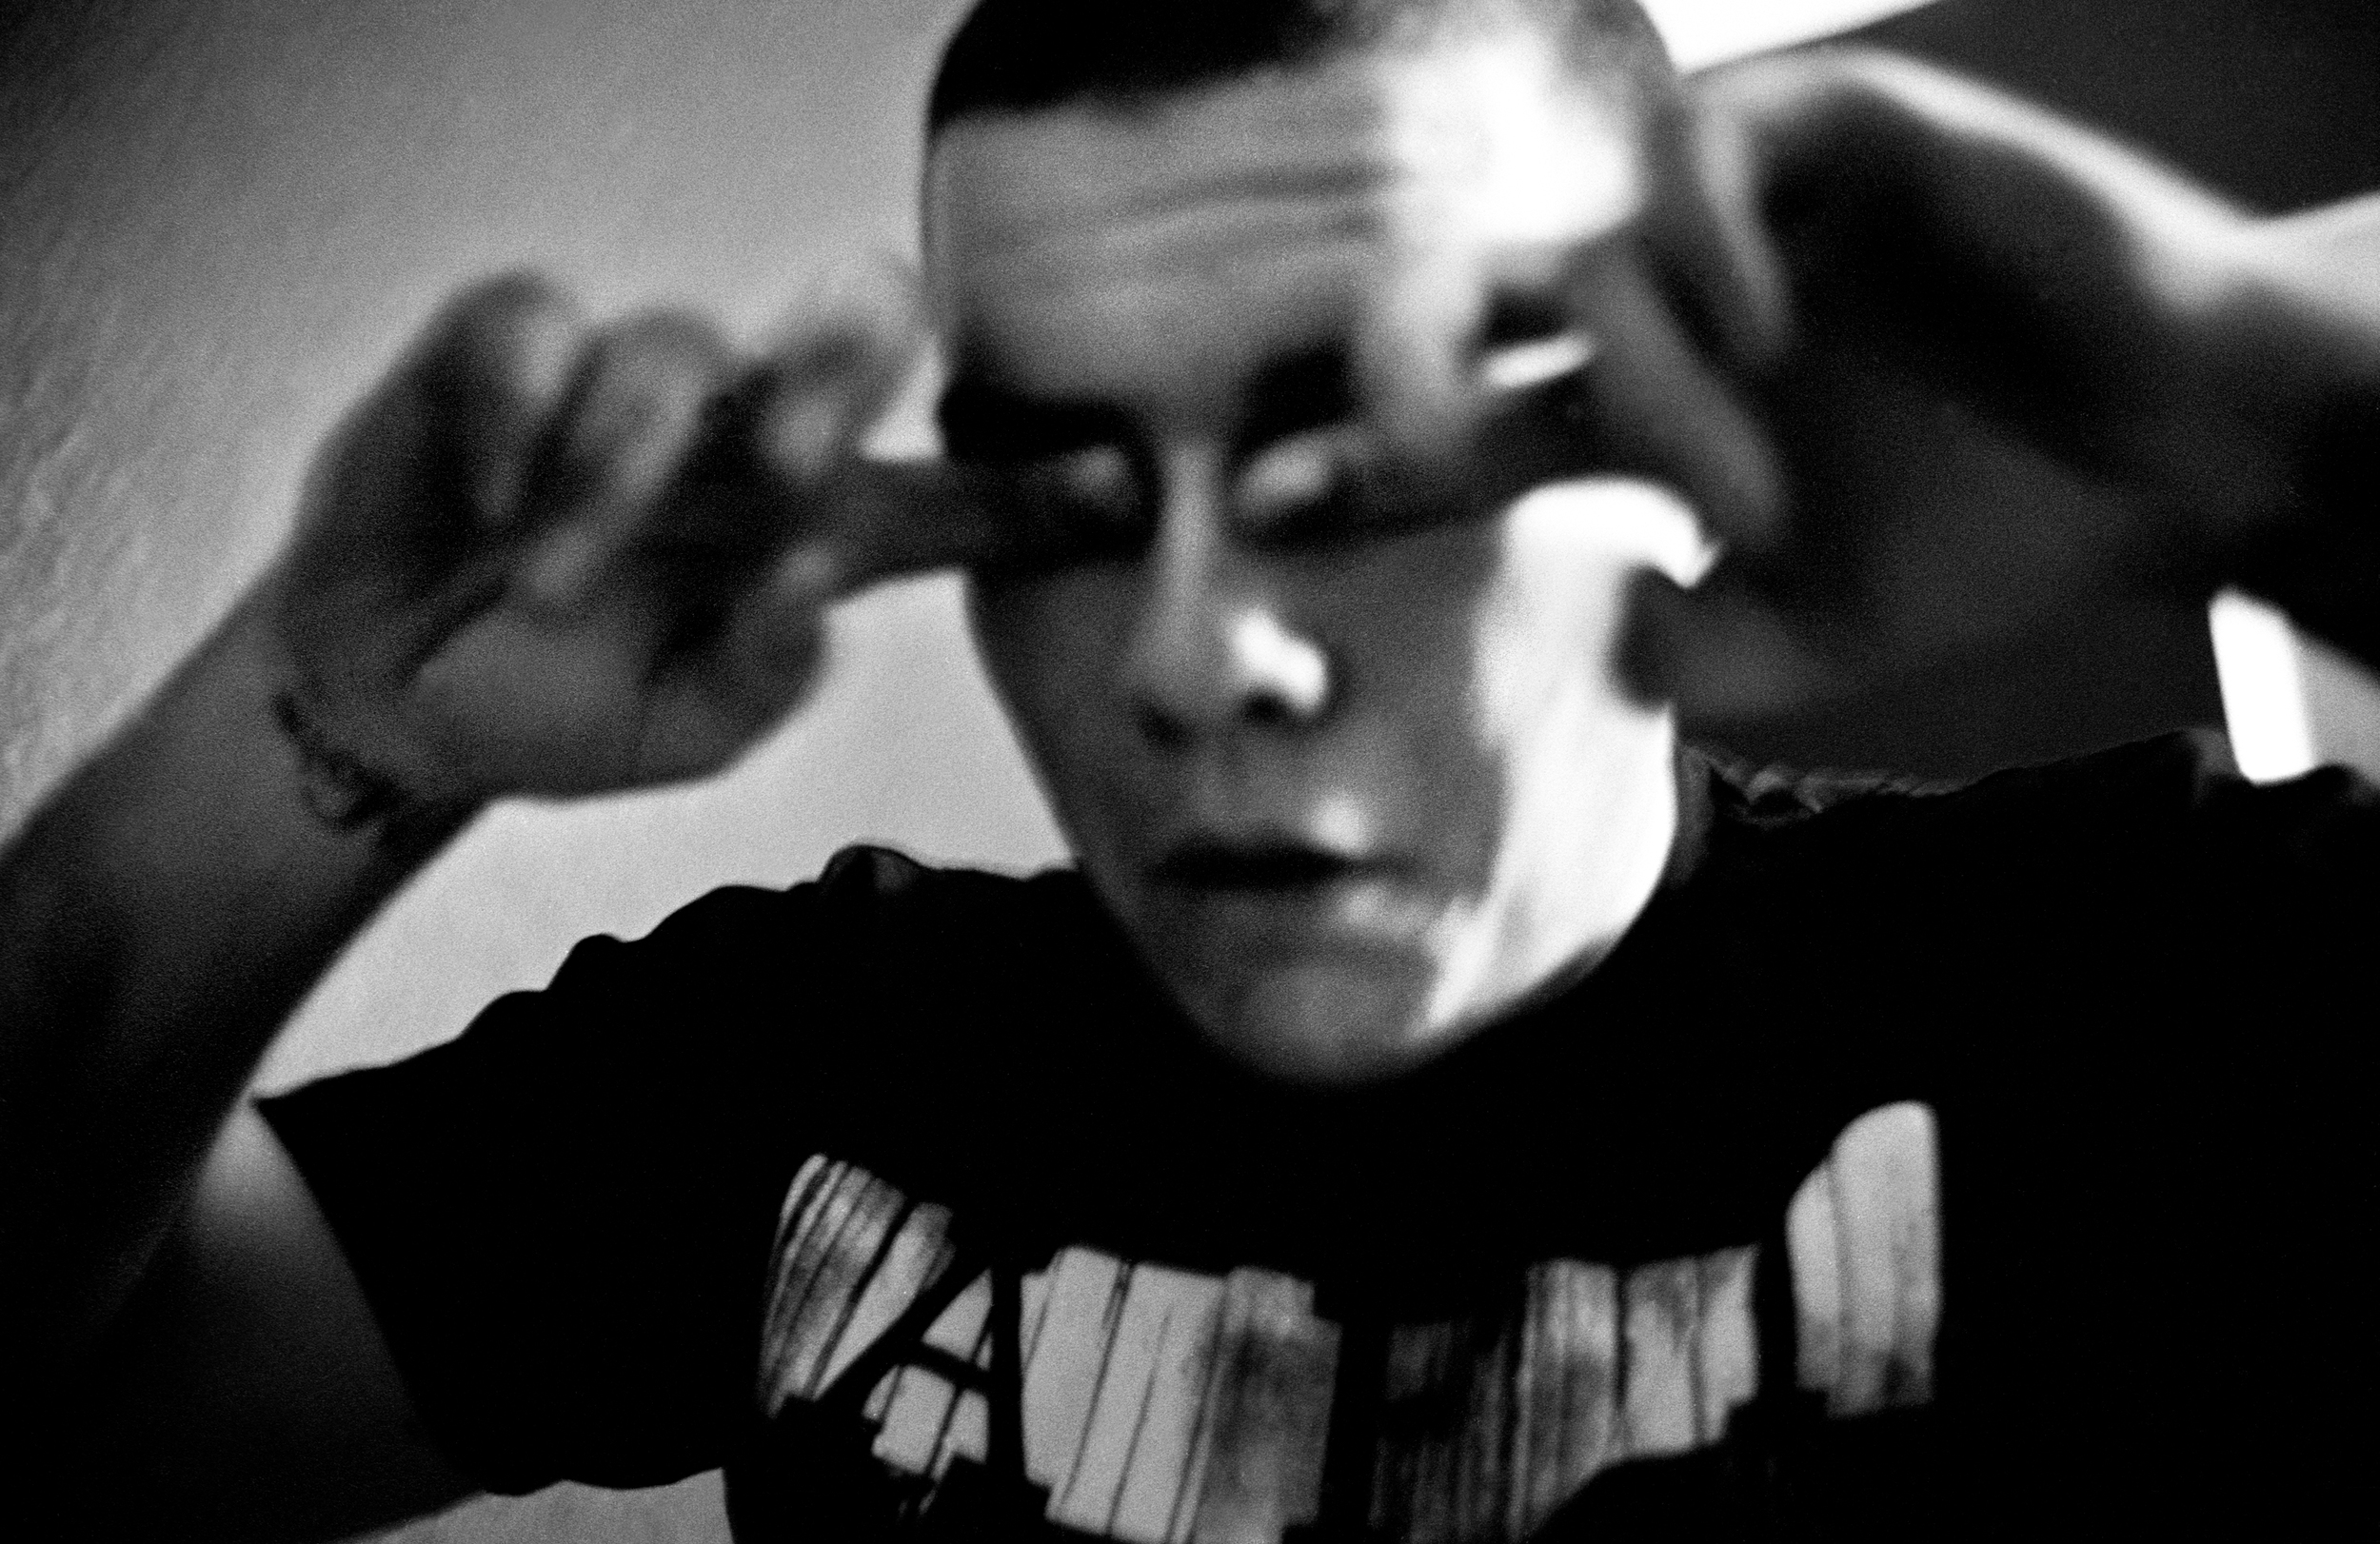 SPC Adam Ramsey rubs his eyes after having an anxiety attack at his sister's house in Carson City, Nevada, 2010. While on leave in Nevada Ramsey experienced hallucinations, depression, and suicidal thoughts; he self-medicated by mixing prescribed medications with alcohol, a common practice among soldiers with post-deployment anxiety.